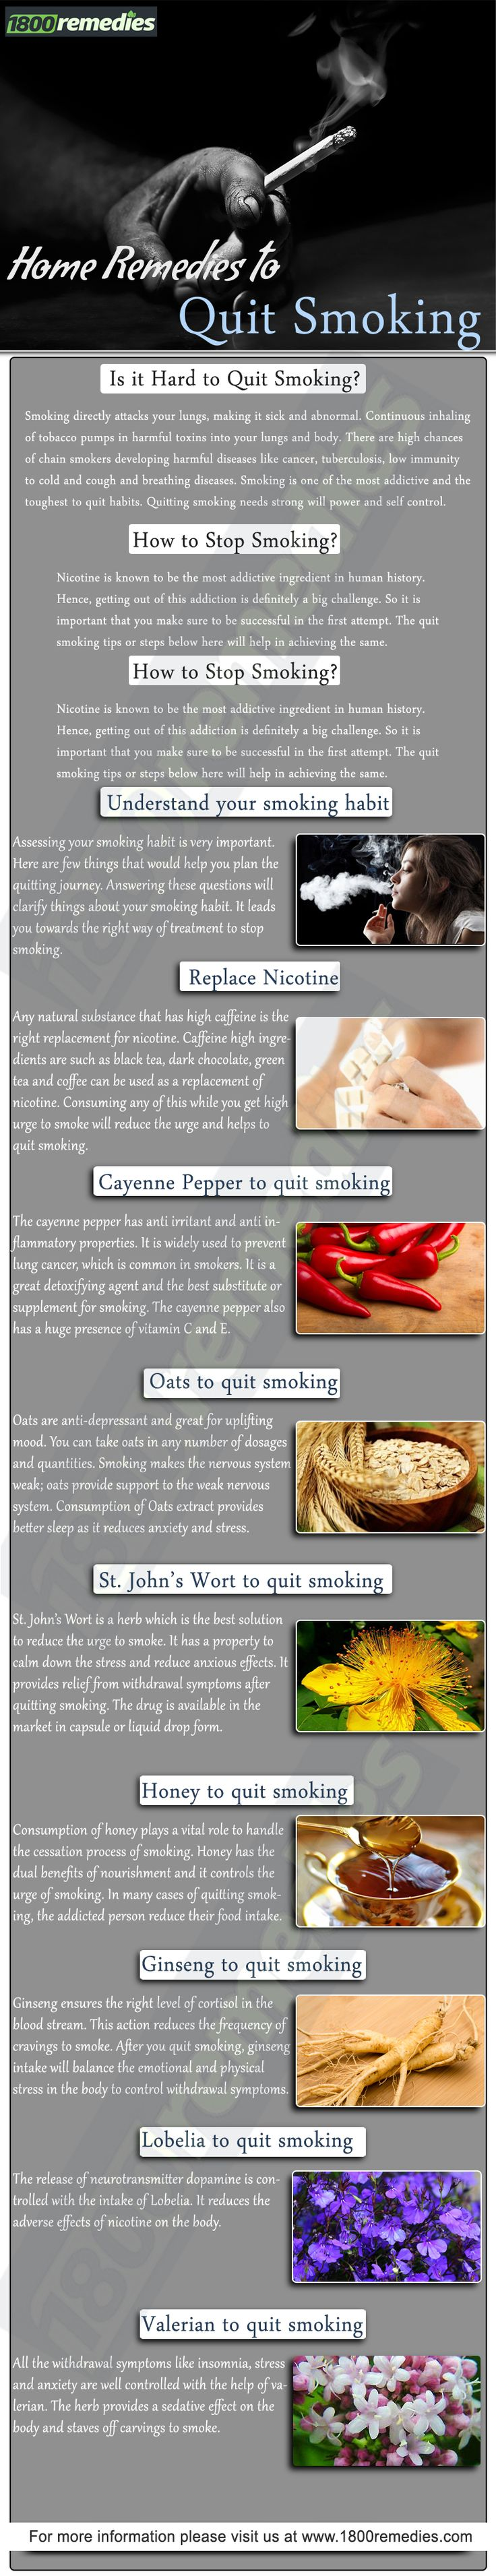 best ideas about smoking cessation quit smoking the following are the effective home remedies to quit smoking naturally